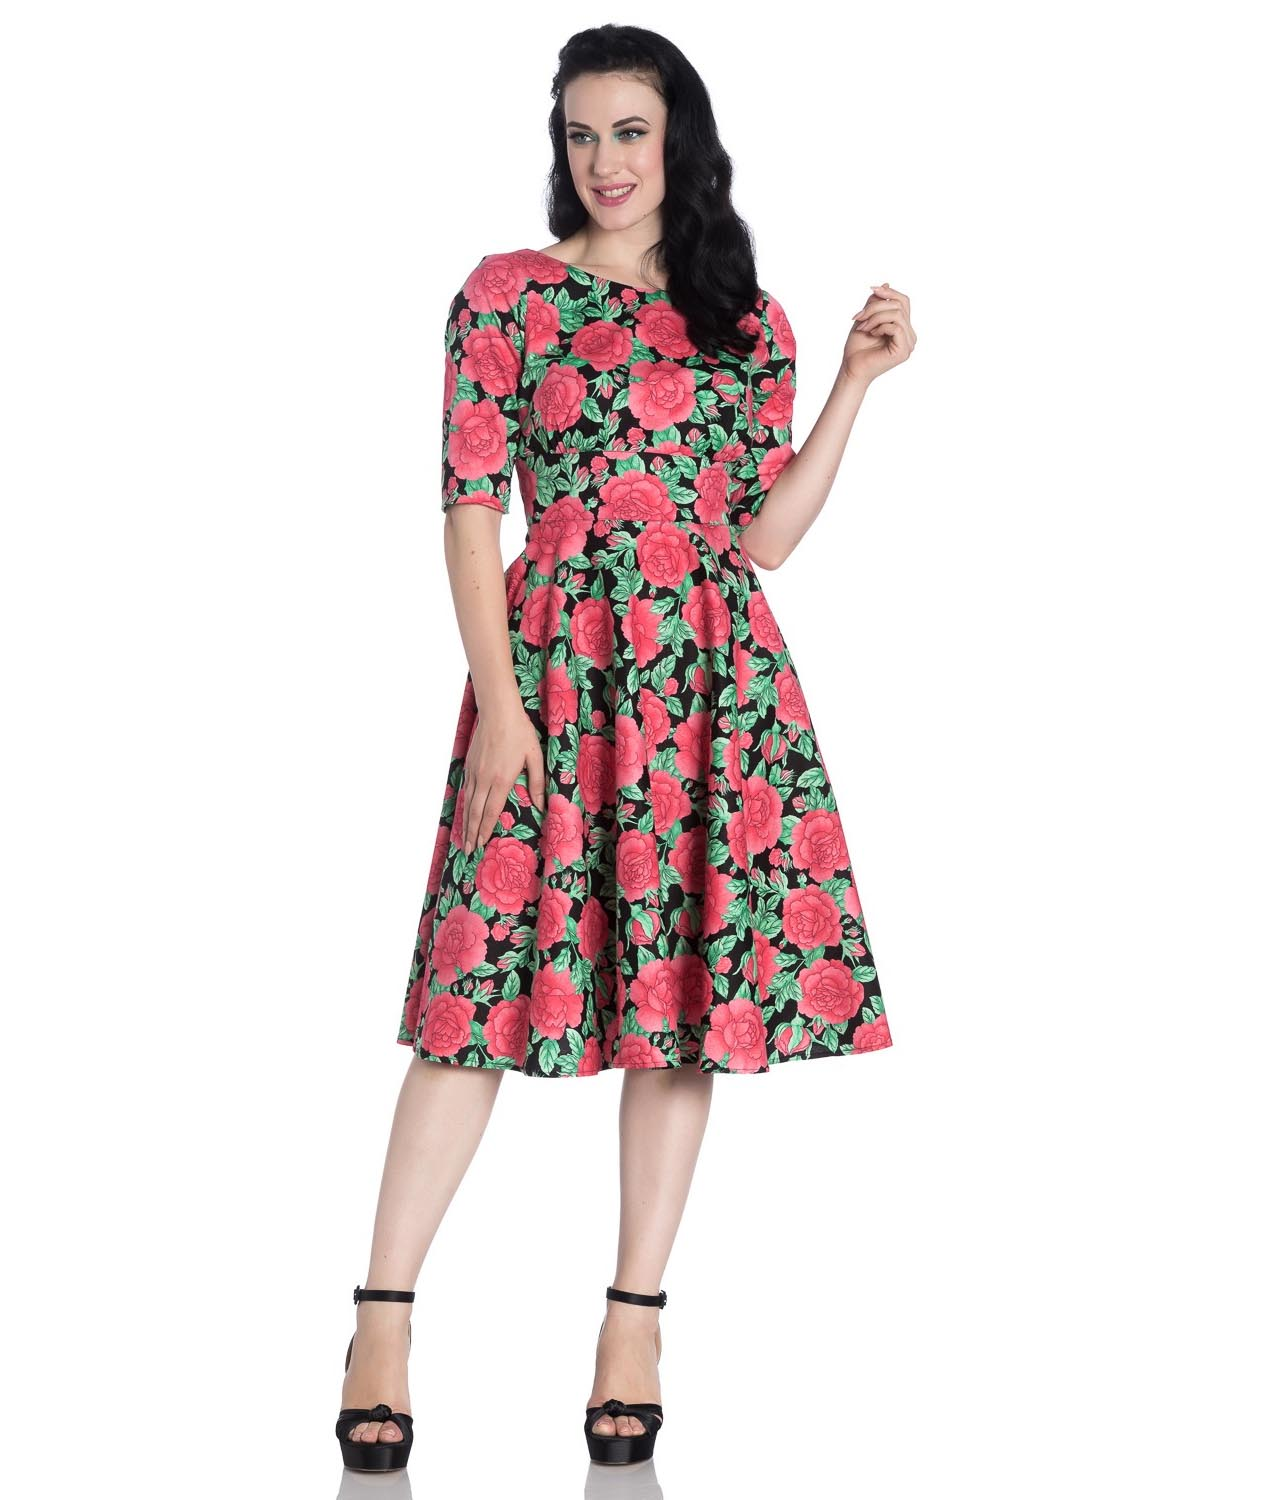 Hell-Bunny-40s-50s-Black-Pin-Up-Vintage-Dress-DARCY-Pink-Roses-All-Sizes thumbnail 23